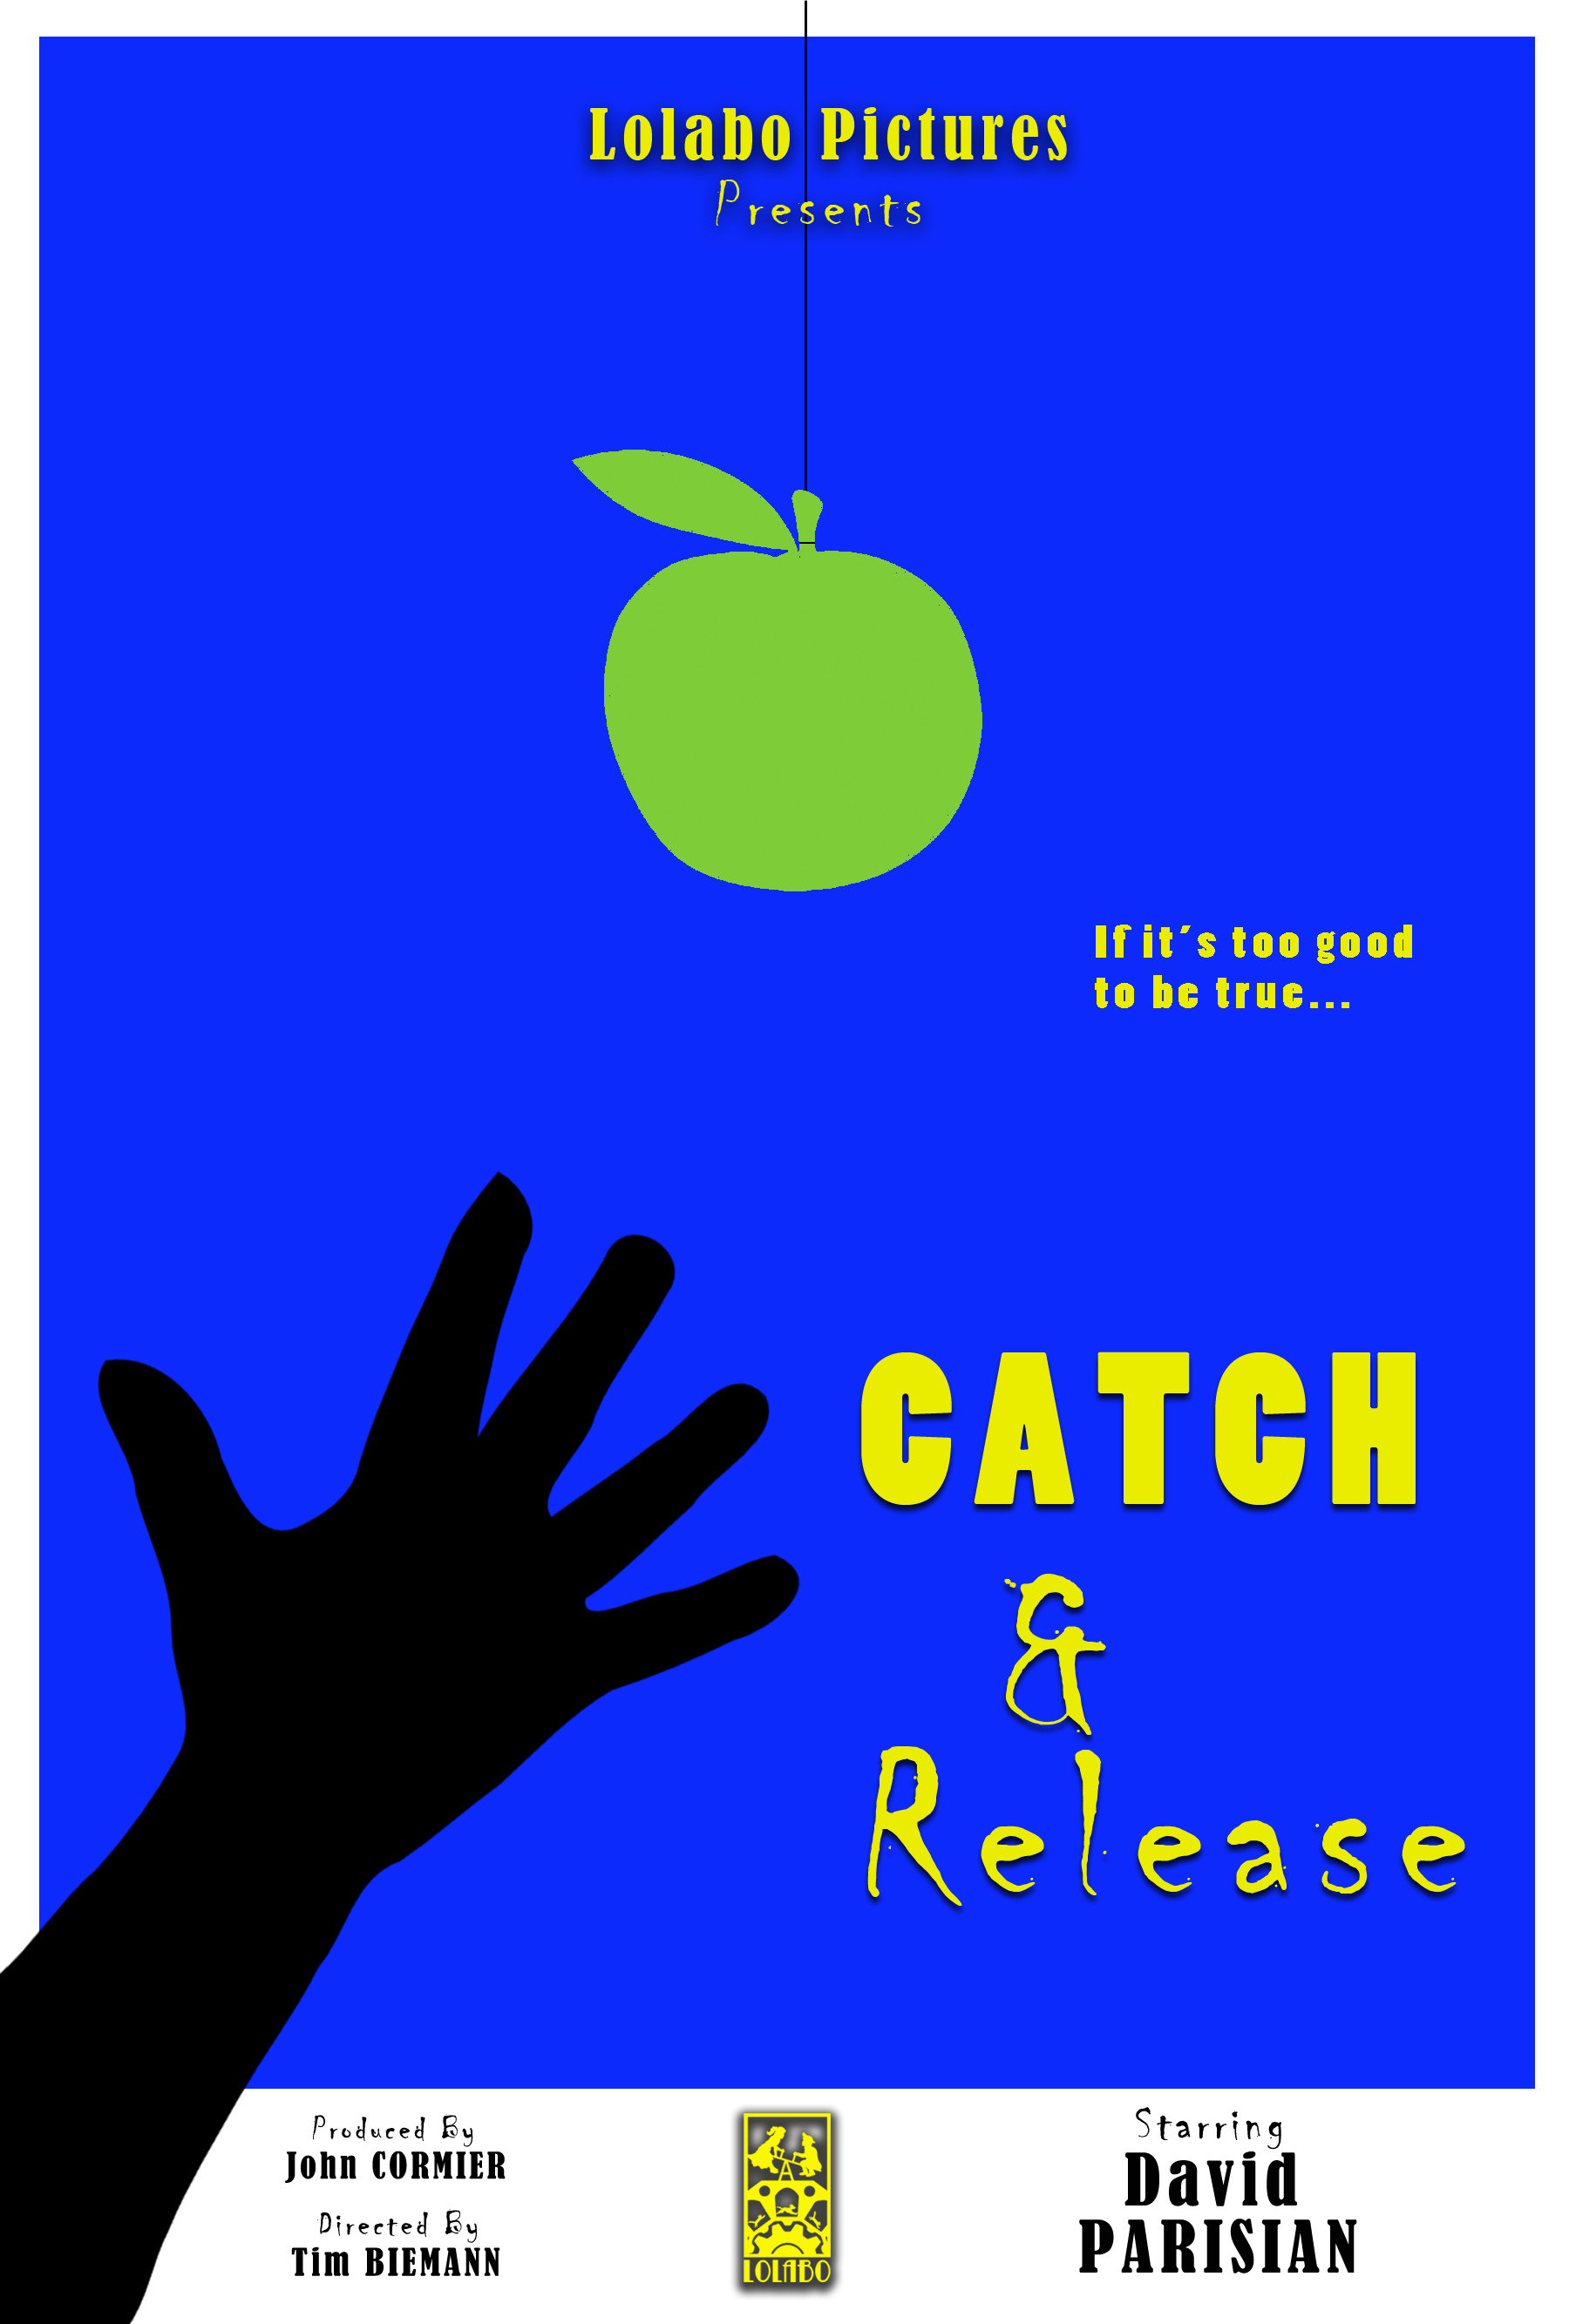 Catch & Release - A homeless man is graciously blessed by the unwarranted attention from mysterious benefactor. But while each handout warms his heart and fills his belly, these apparent gifts of goodwill begin to lead him down a path of suspicion and paranoia.